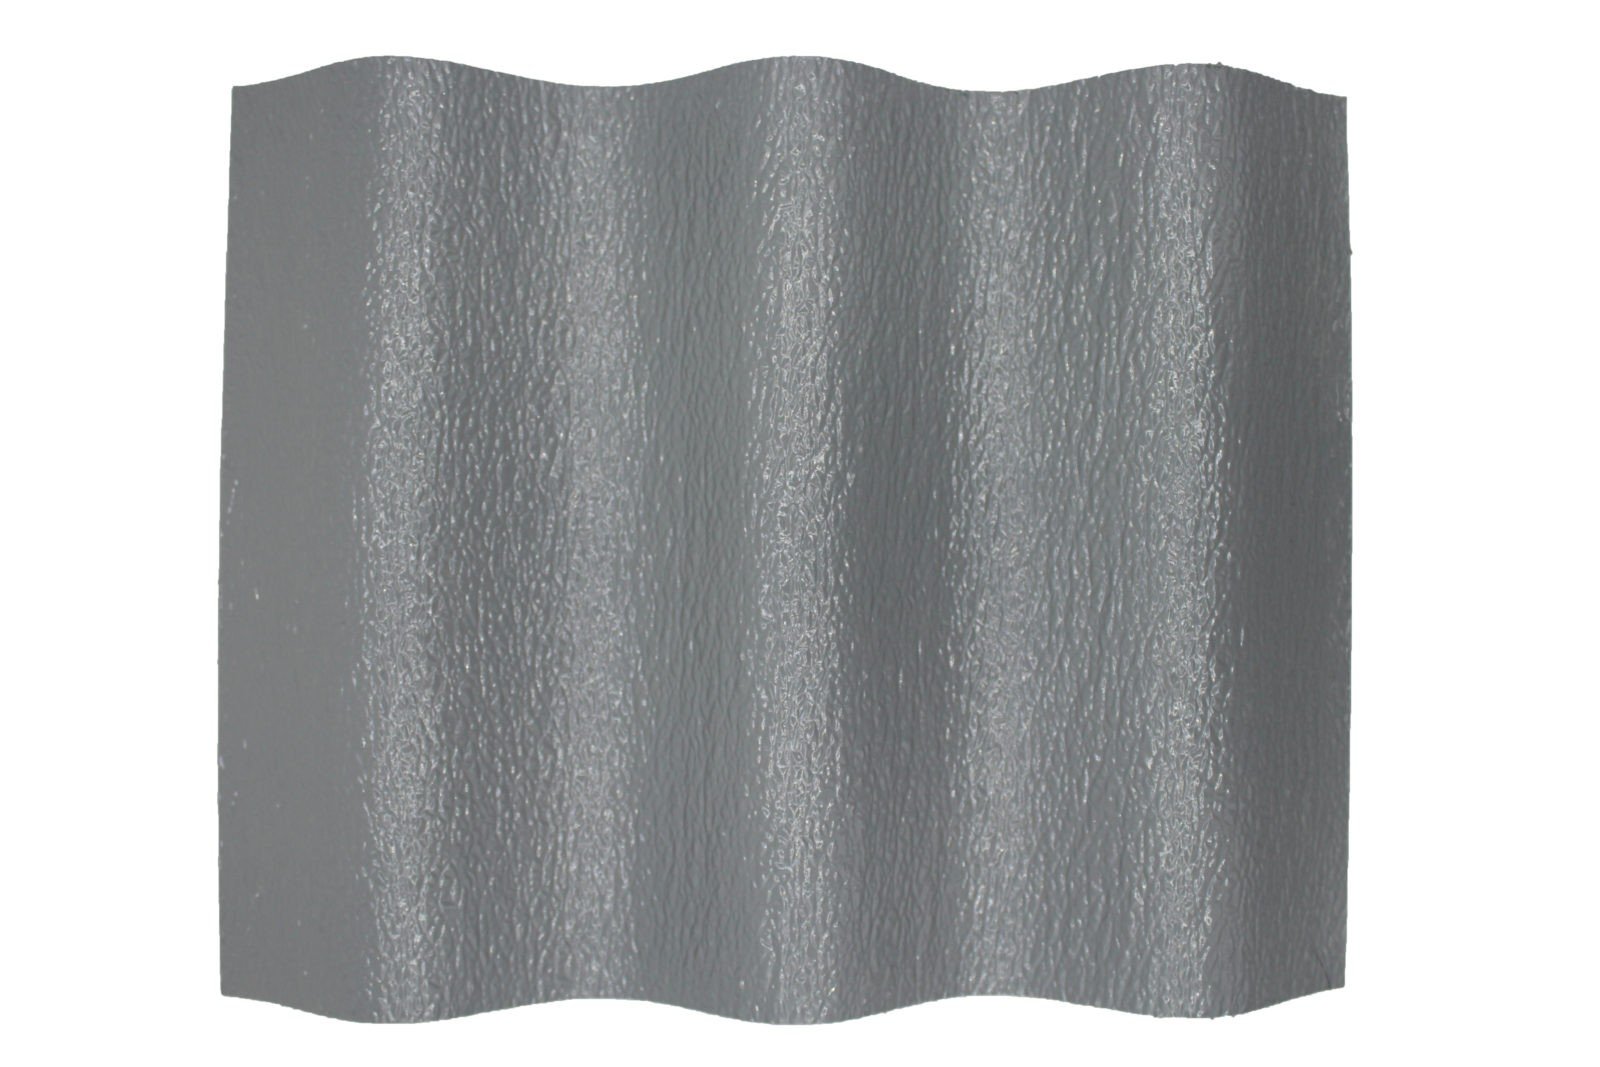 Fiberglass Roofing And Siding Panel 4 2 Profile 12oz Fire Rated Gray Ecologic Technologies Inc